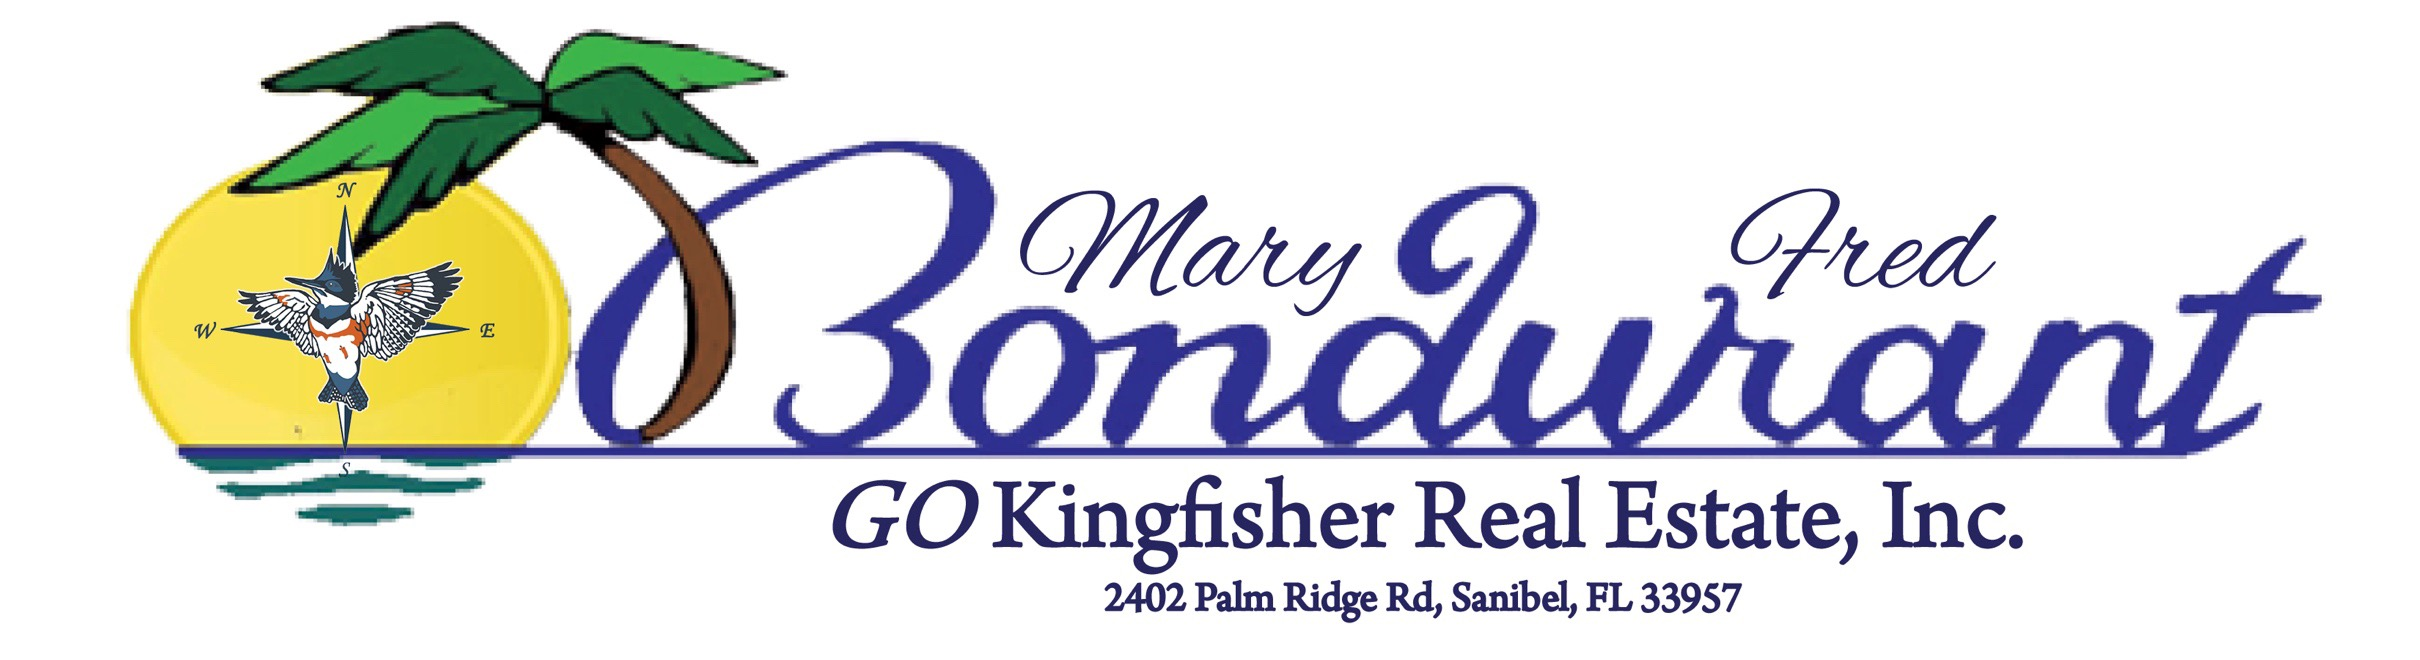 Bondurant Realty Group -  Sanibel & Captiva Real Estate Bondurant Realty Group